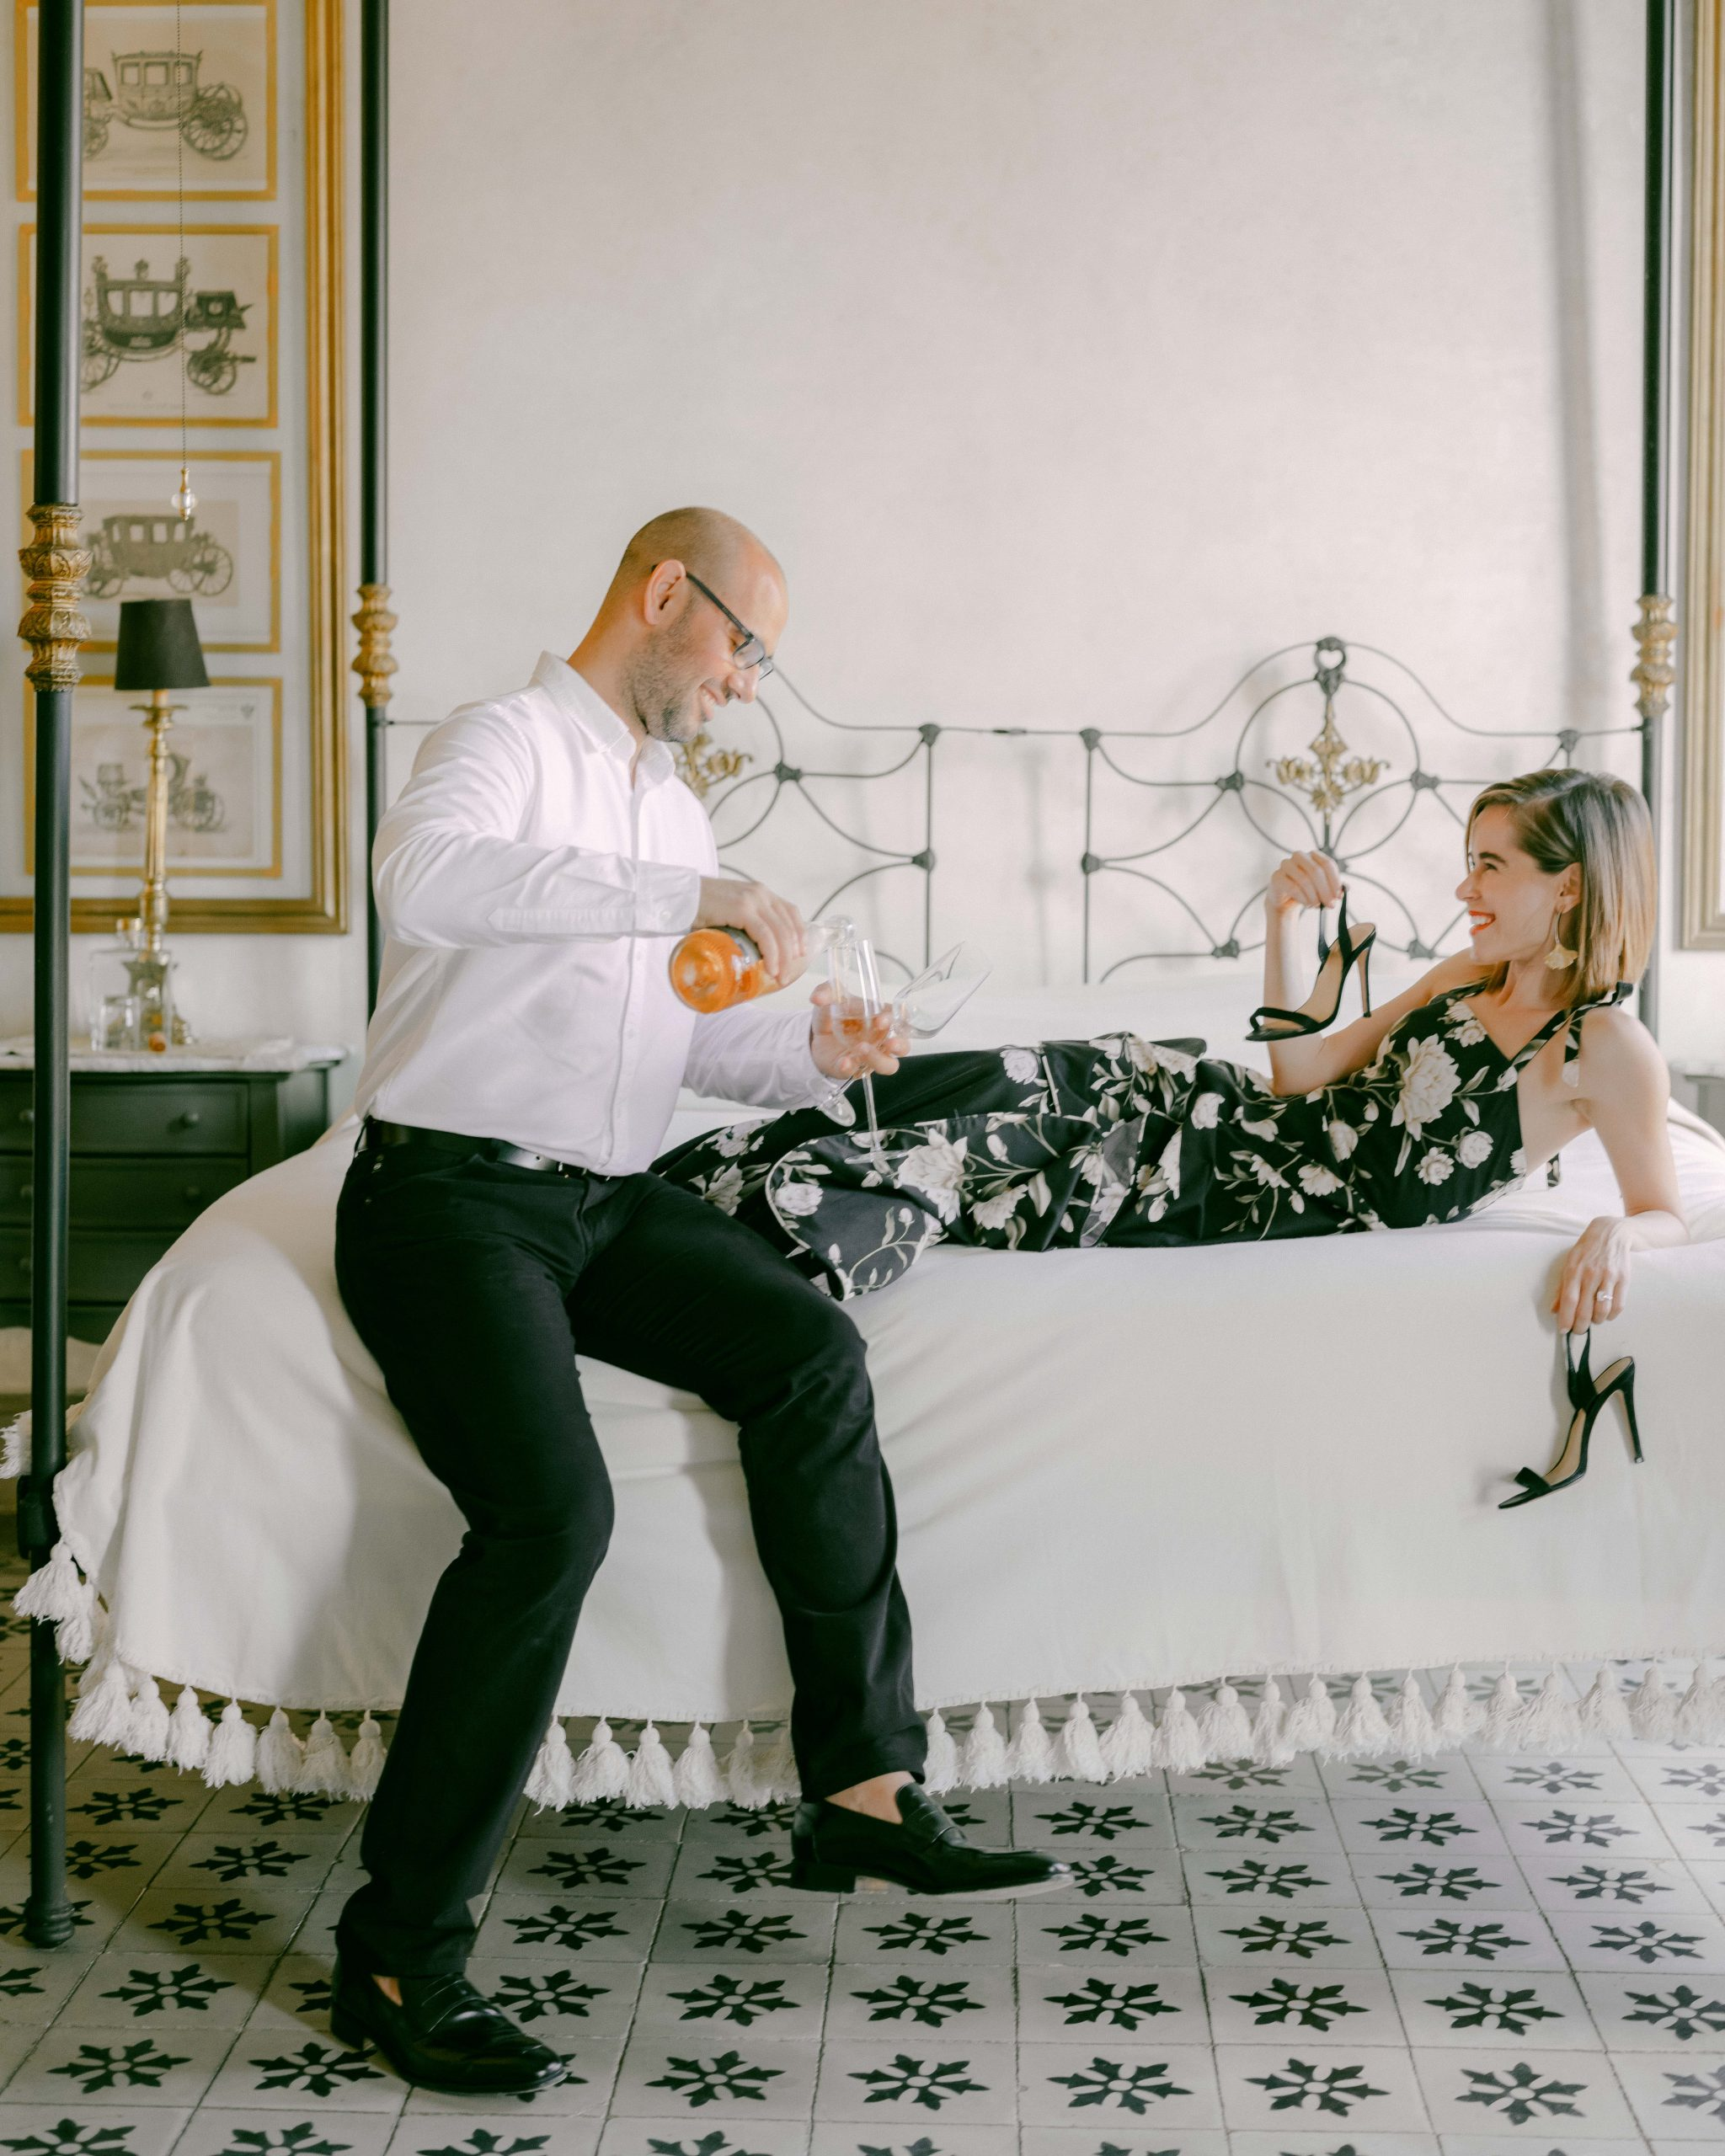 Stephanie Hill on 7 Things to Consider When Choosing Your Wedding Photographer featured on The Style Bungalow